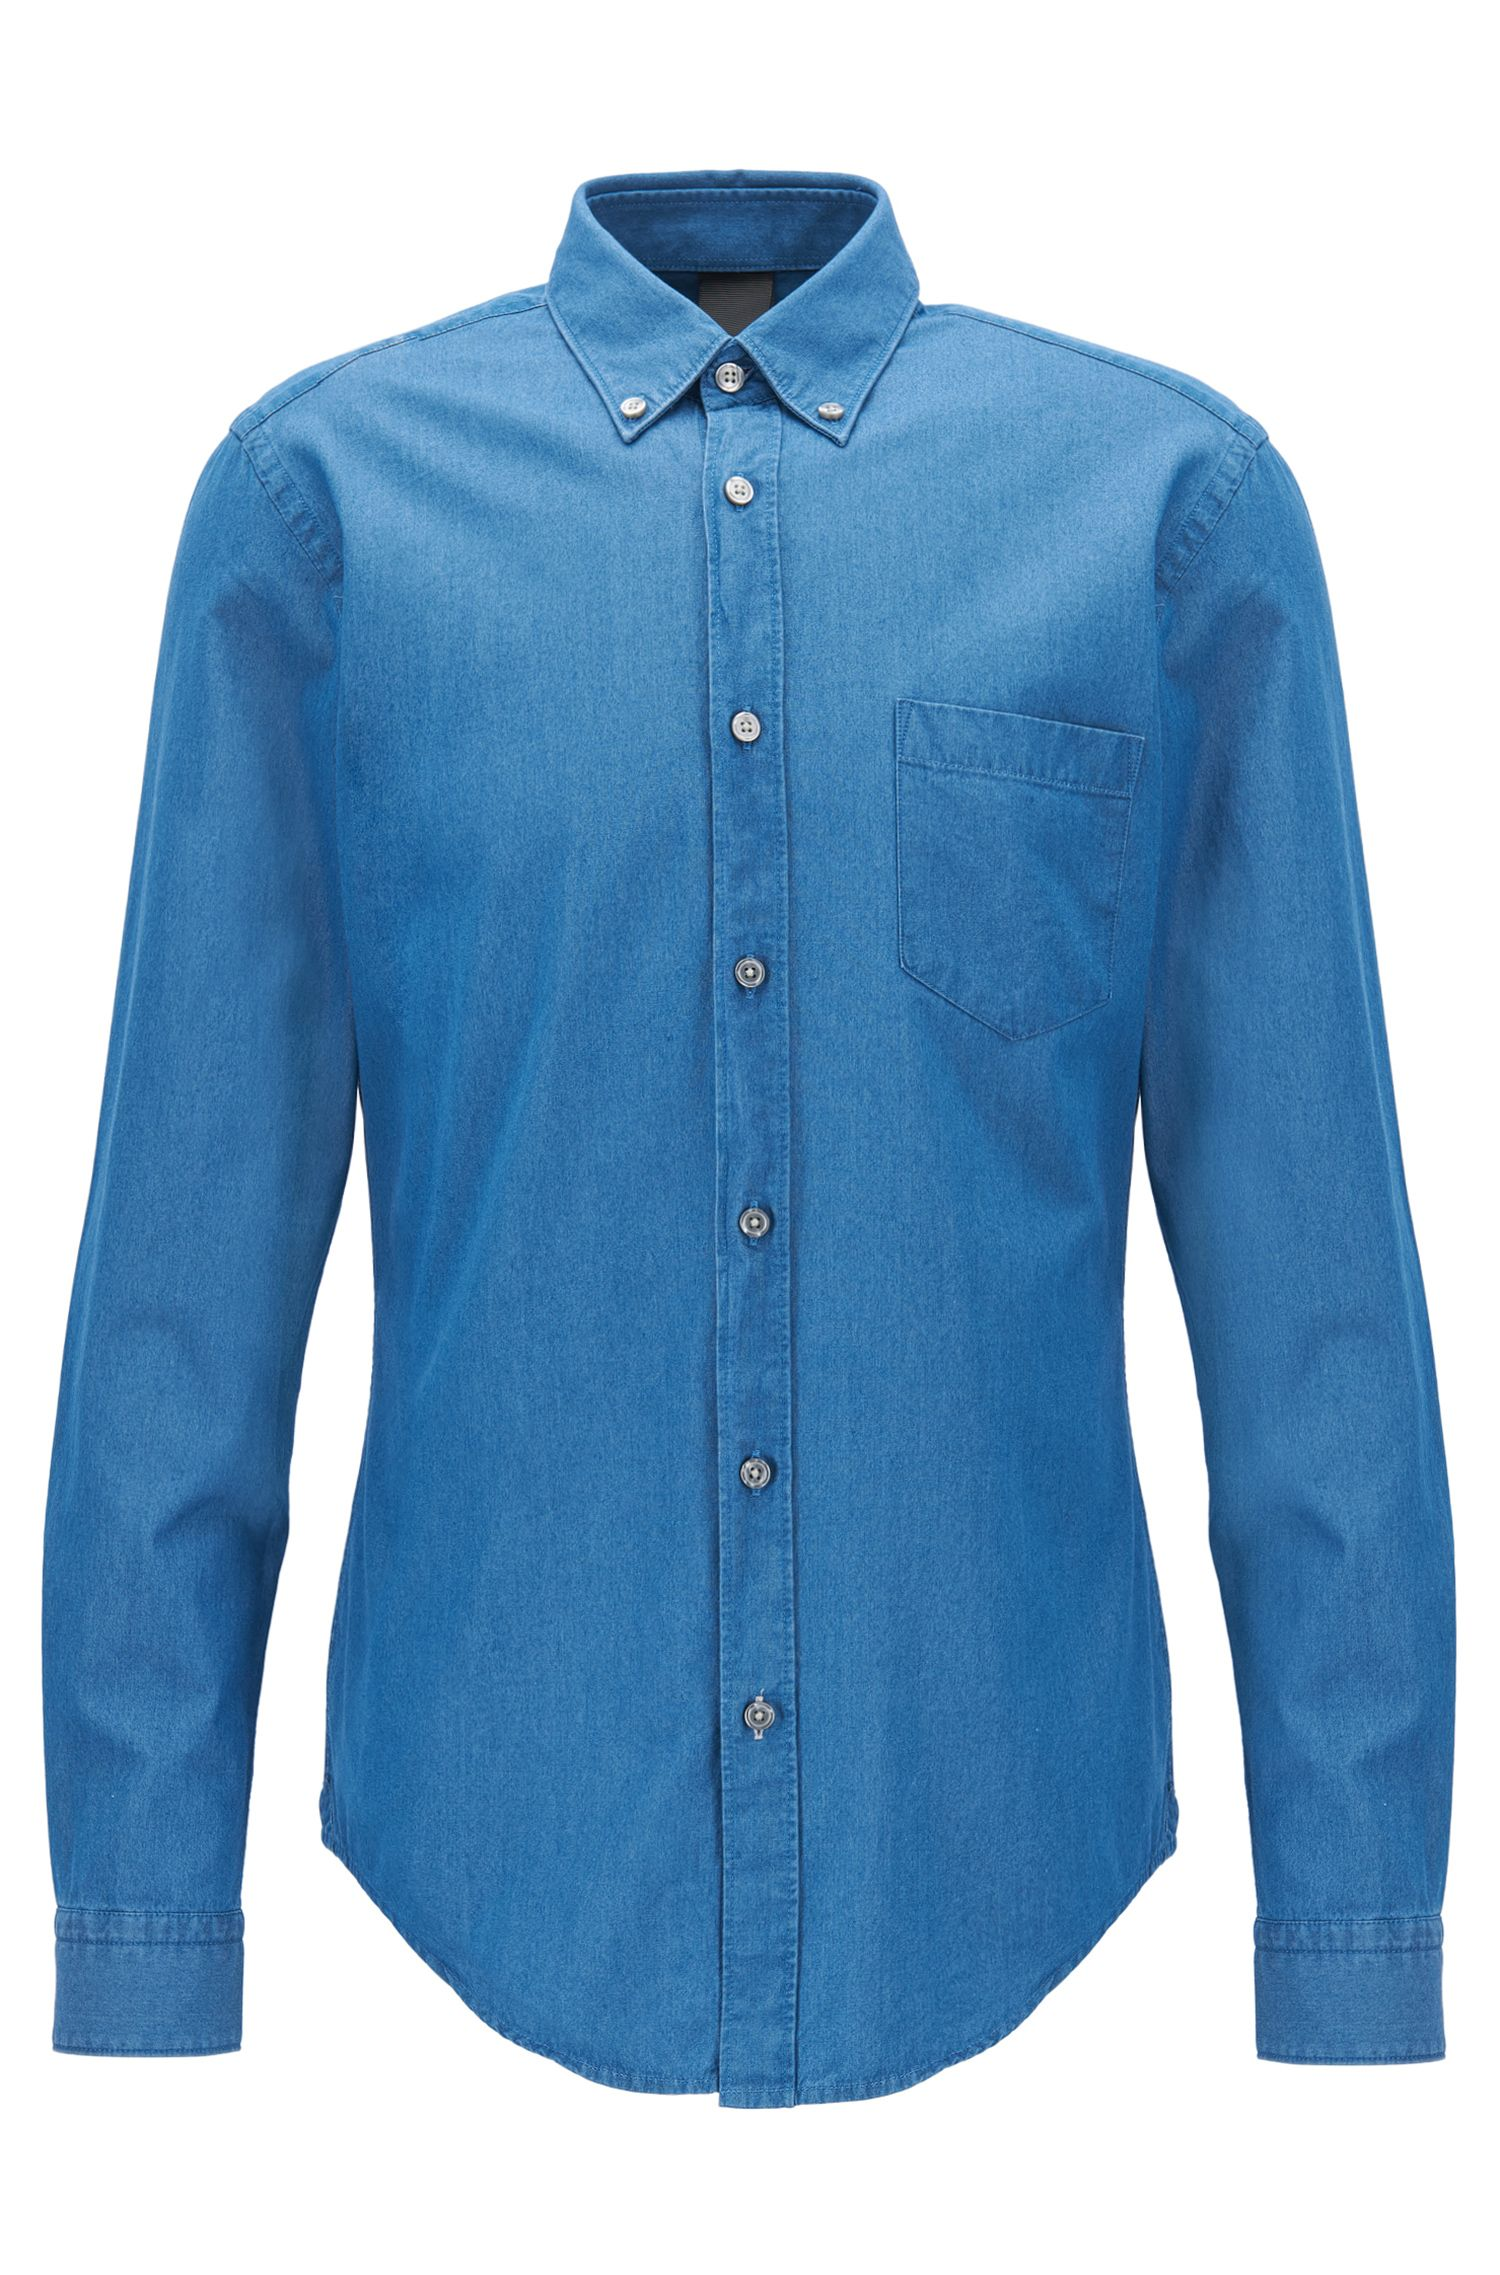 Denim-twill shirt in a slim fit